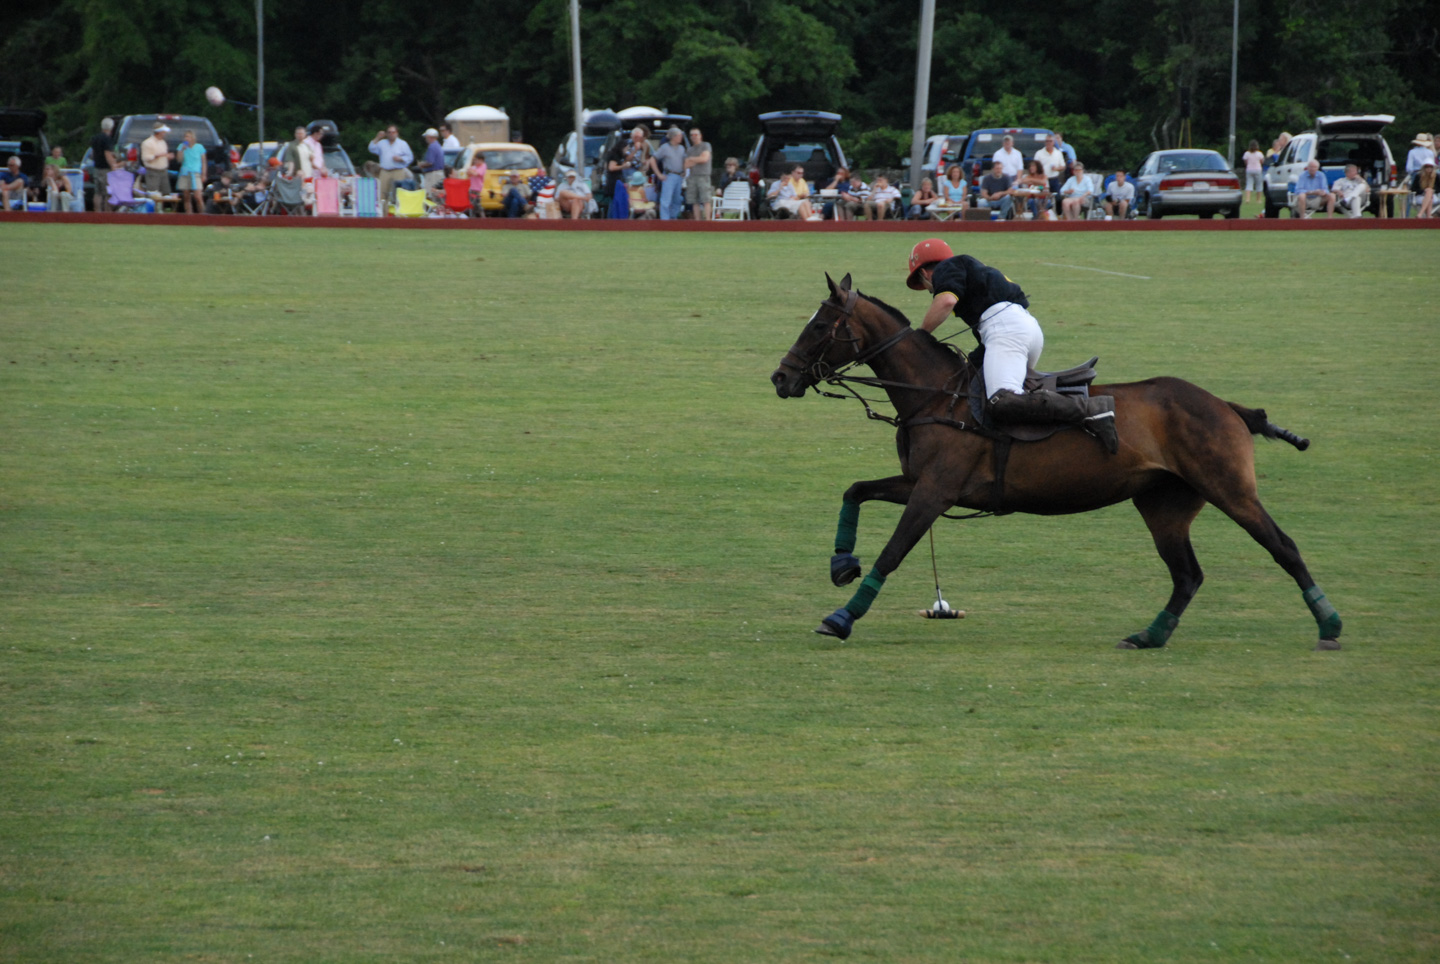 Newport Polo Match action